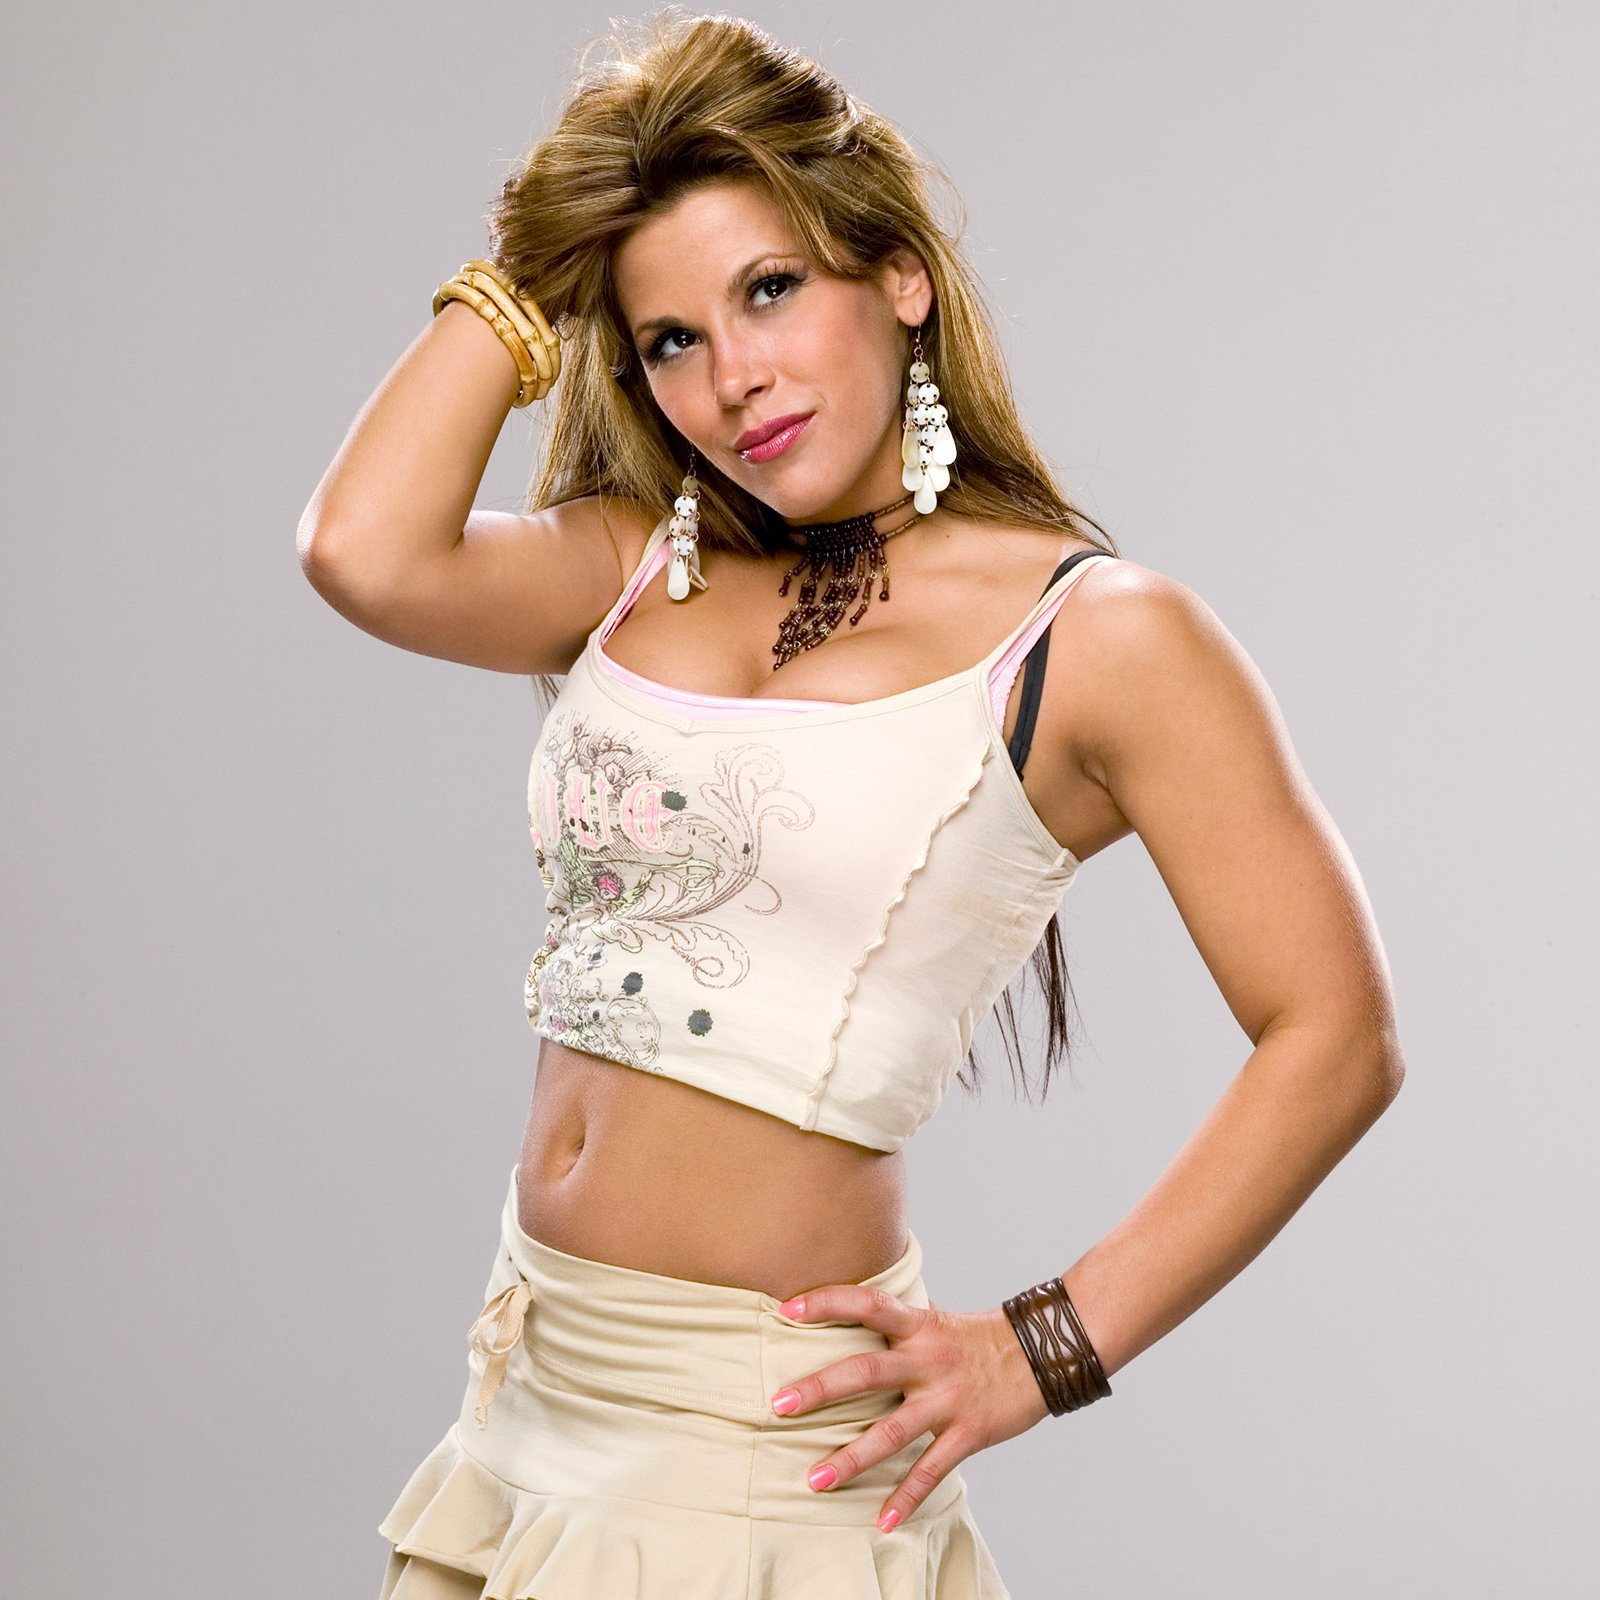 Mickie james wwe porno